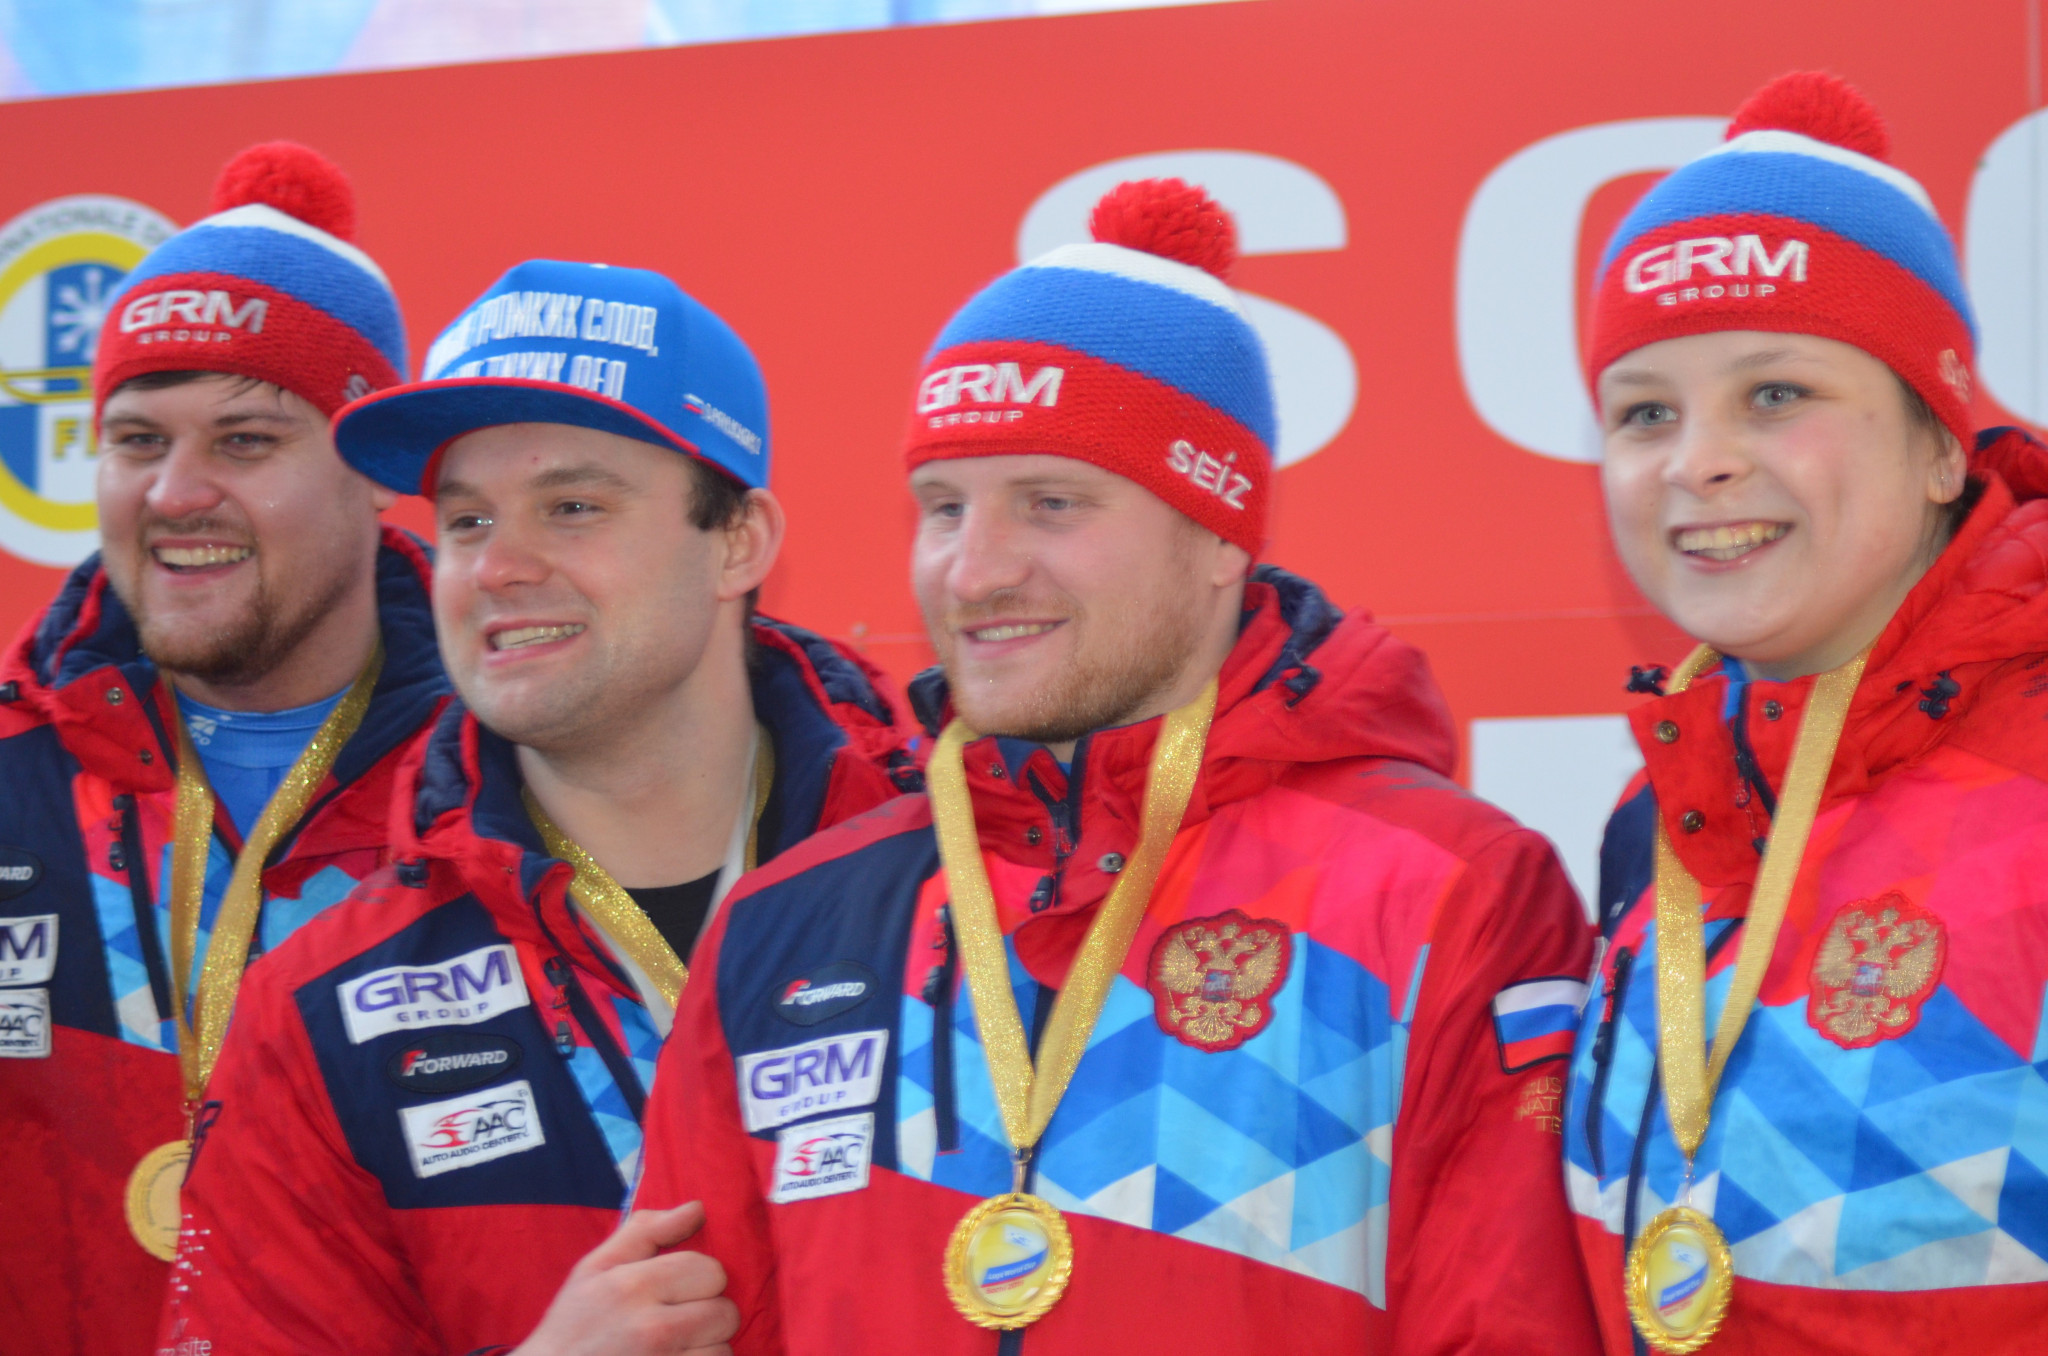 The Russian relay team won in Sochi, finishing second in the overall World Cup standings ©FIL